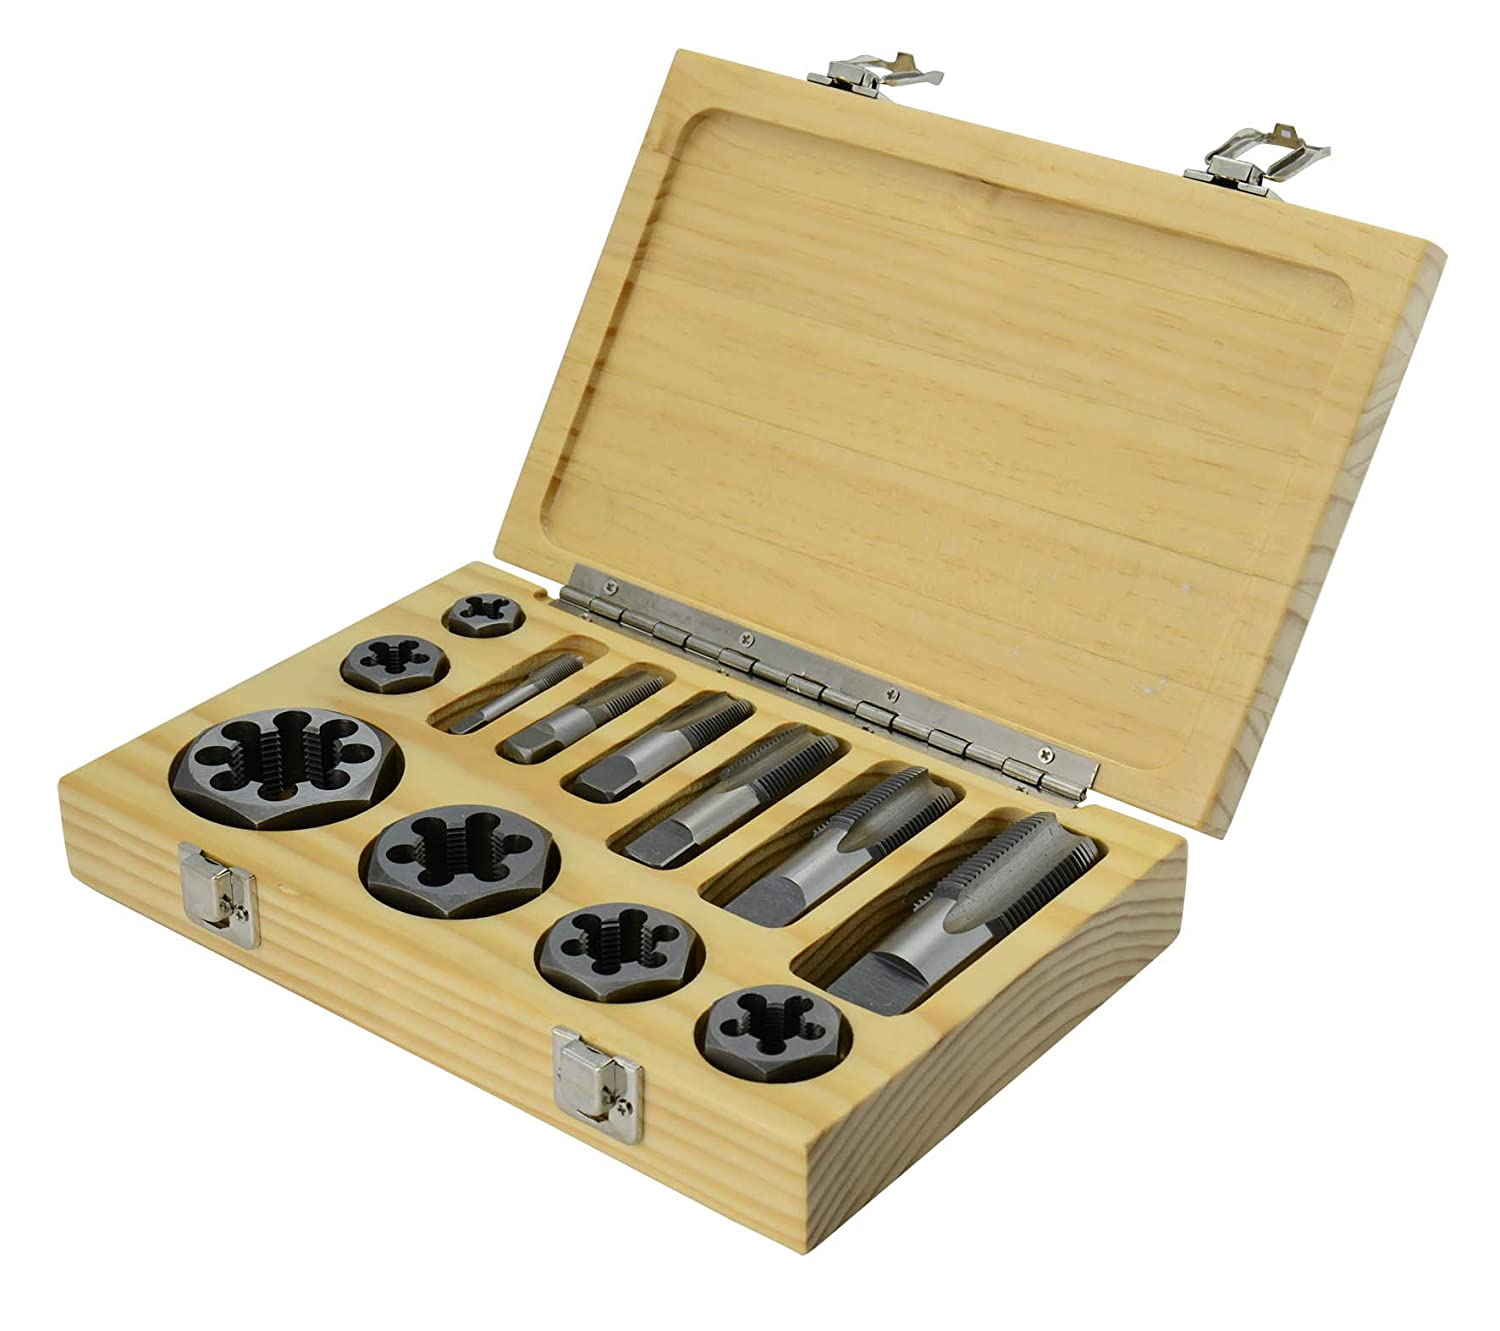 Drill Be super welcome America 12 Piece Carbon Steel NPT Die Pipe Max 58% OFF Set 1 and Tap